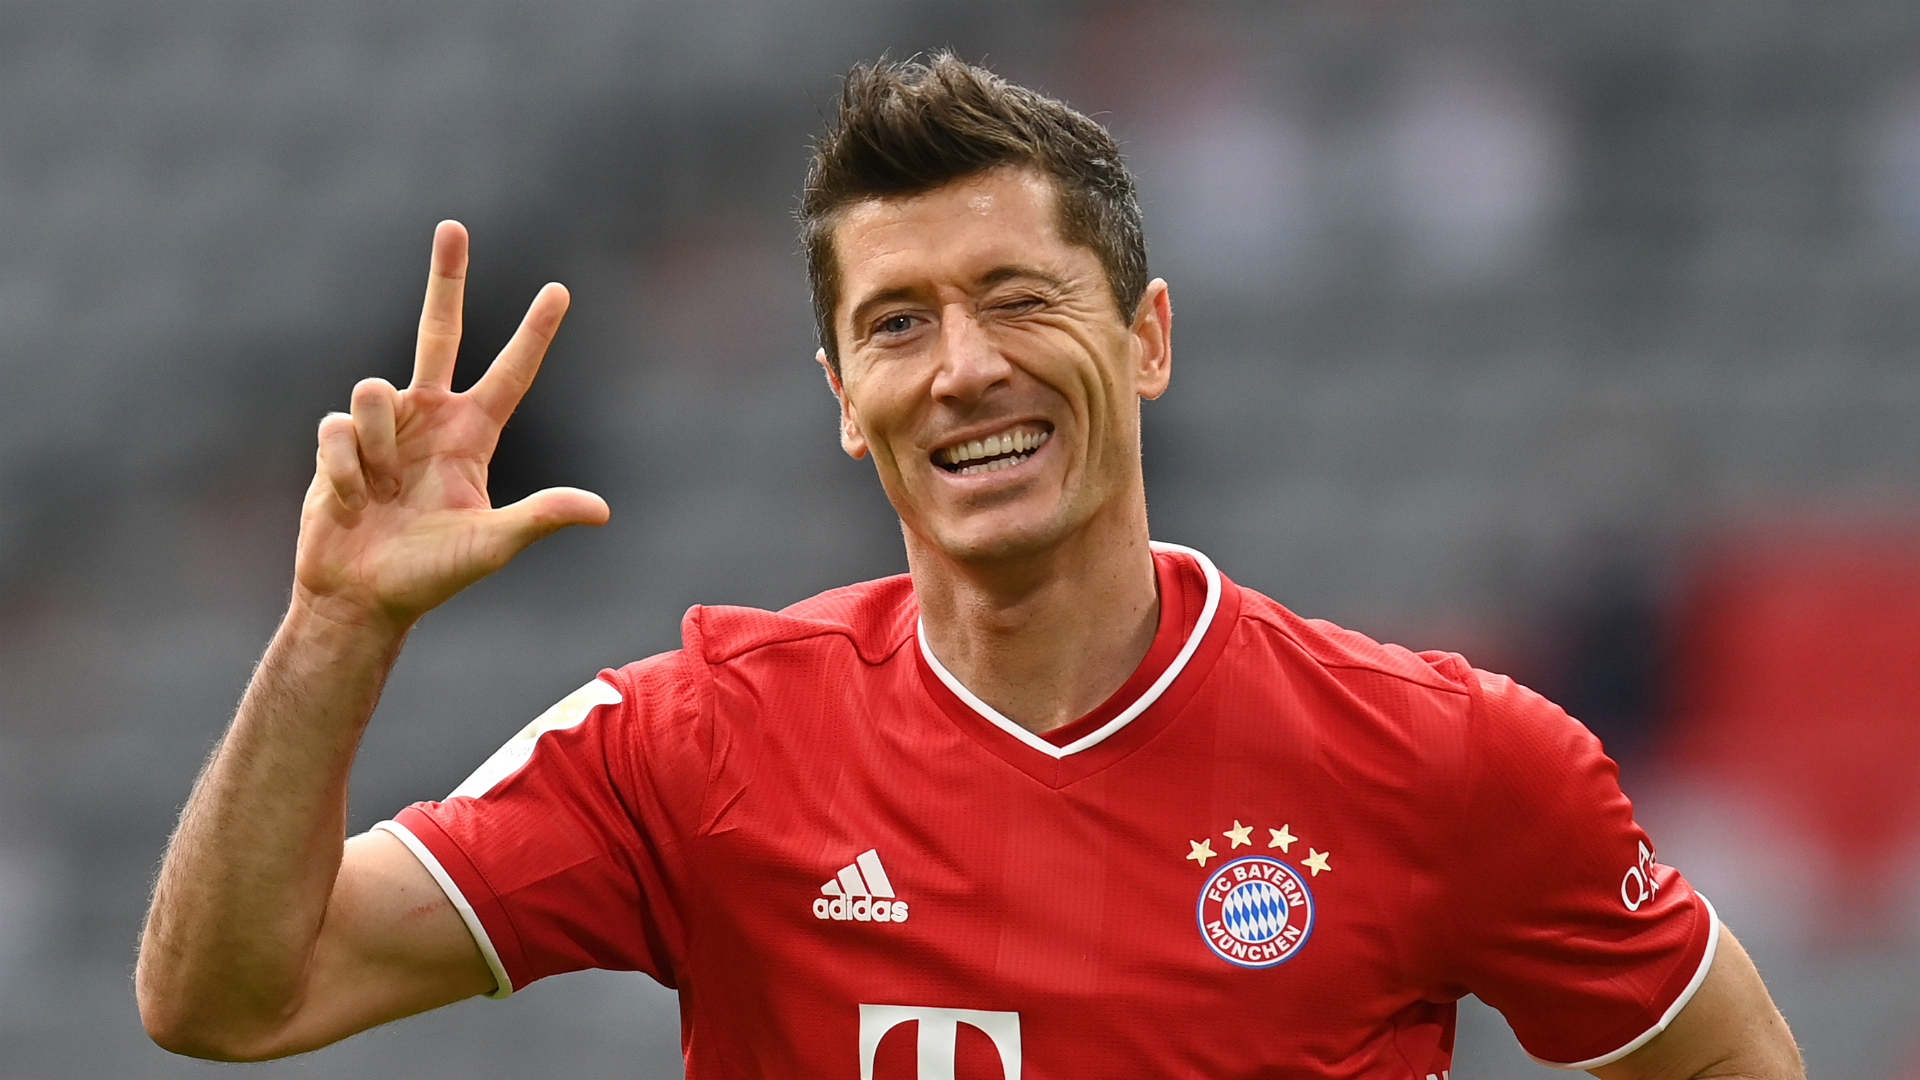 Lewandowski sets new Bundesliga record in Eintracht Frankfurt win